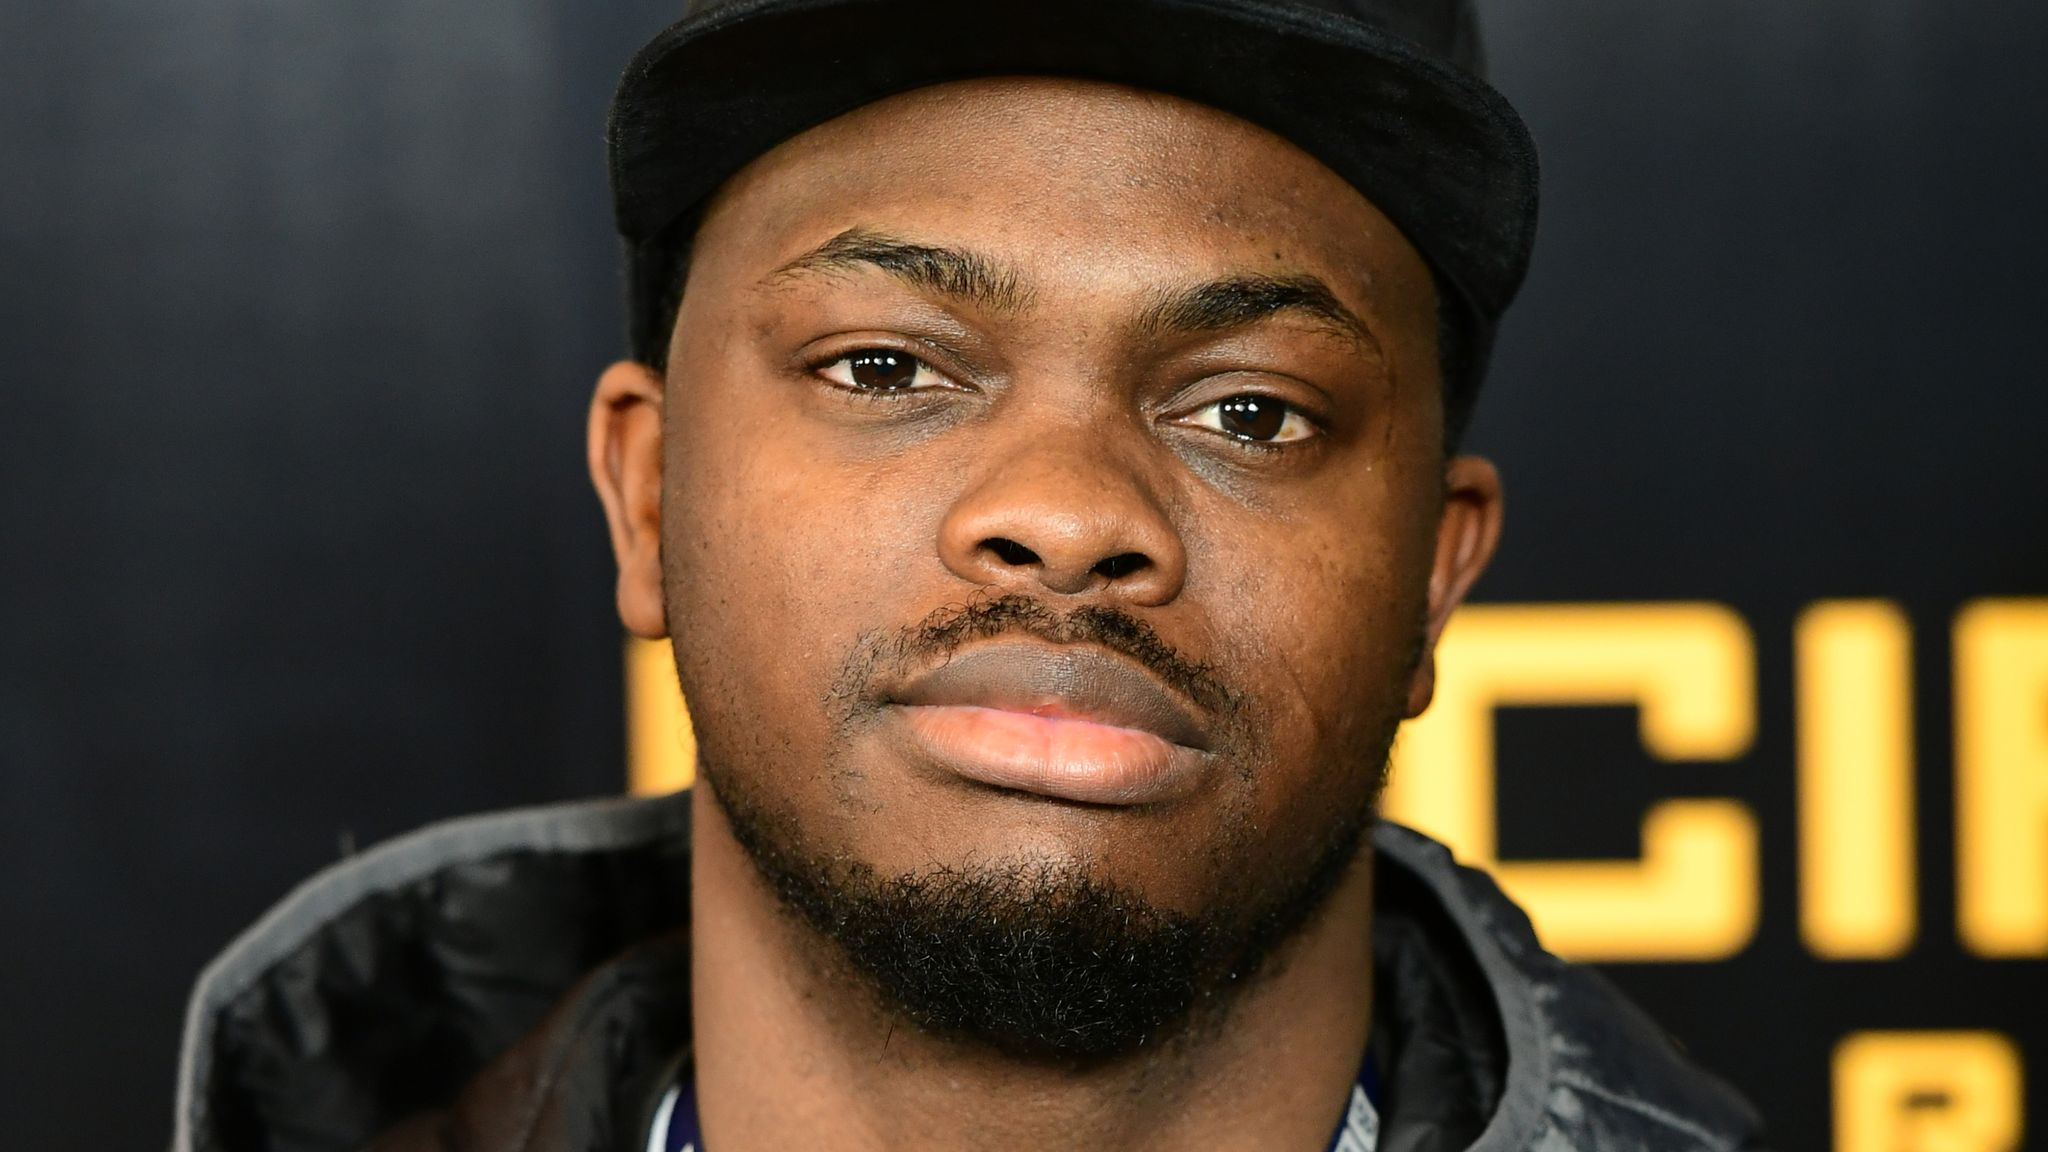 1Xtra DJ Sideman quits BBC over use of racist term in news report ...